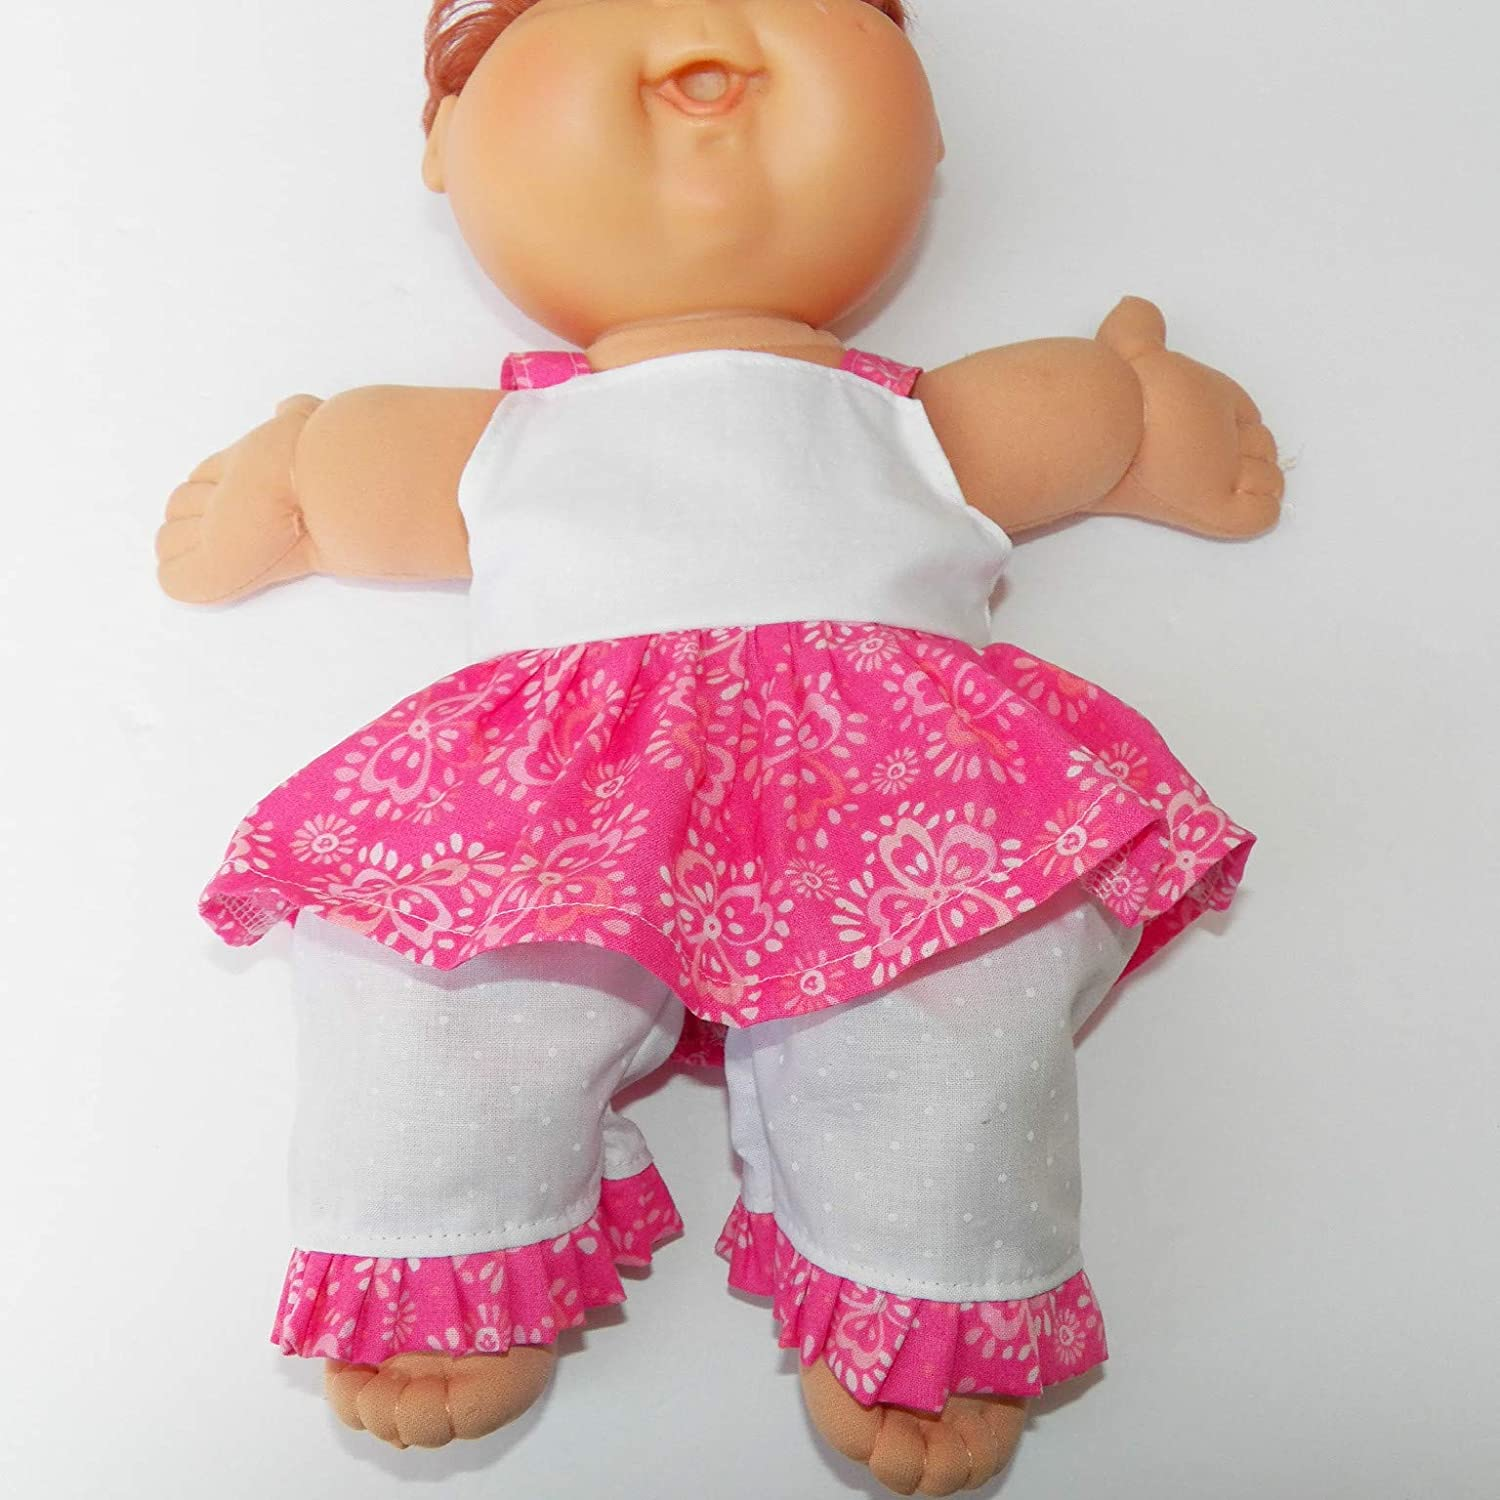 Cabbage Patch Doll Clothes Fits 14 Inch Girl Preemie Includes One White and Pink Floral Dress and Ruffled Pants No Doll